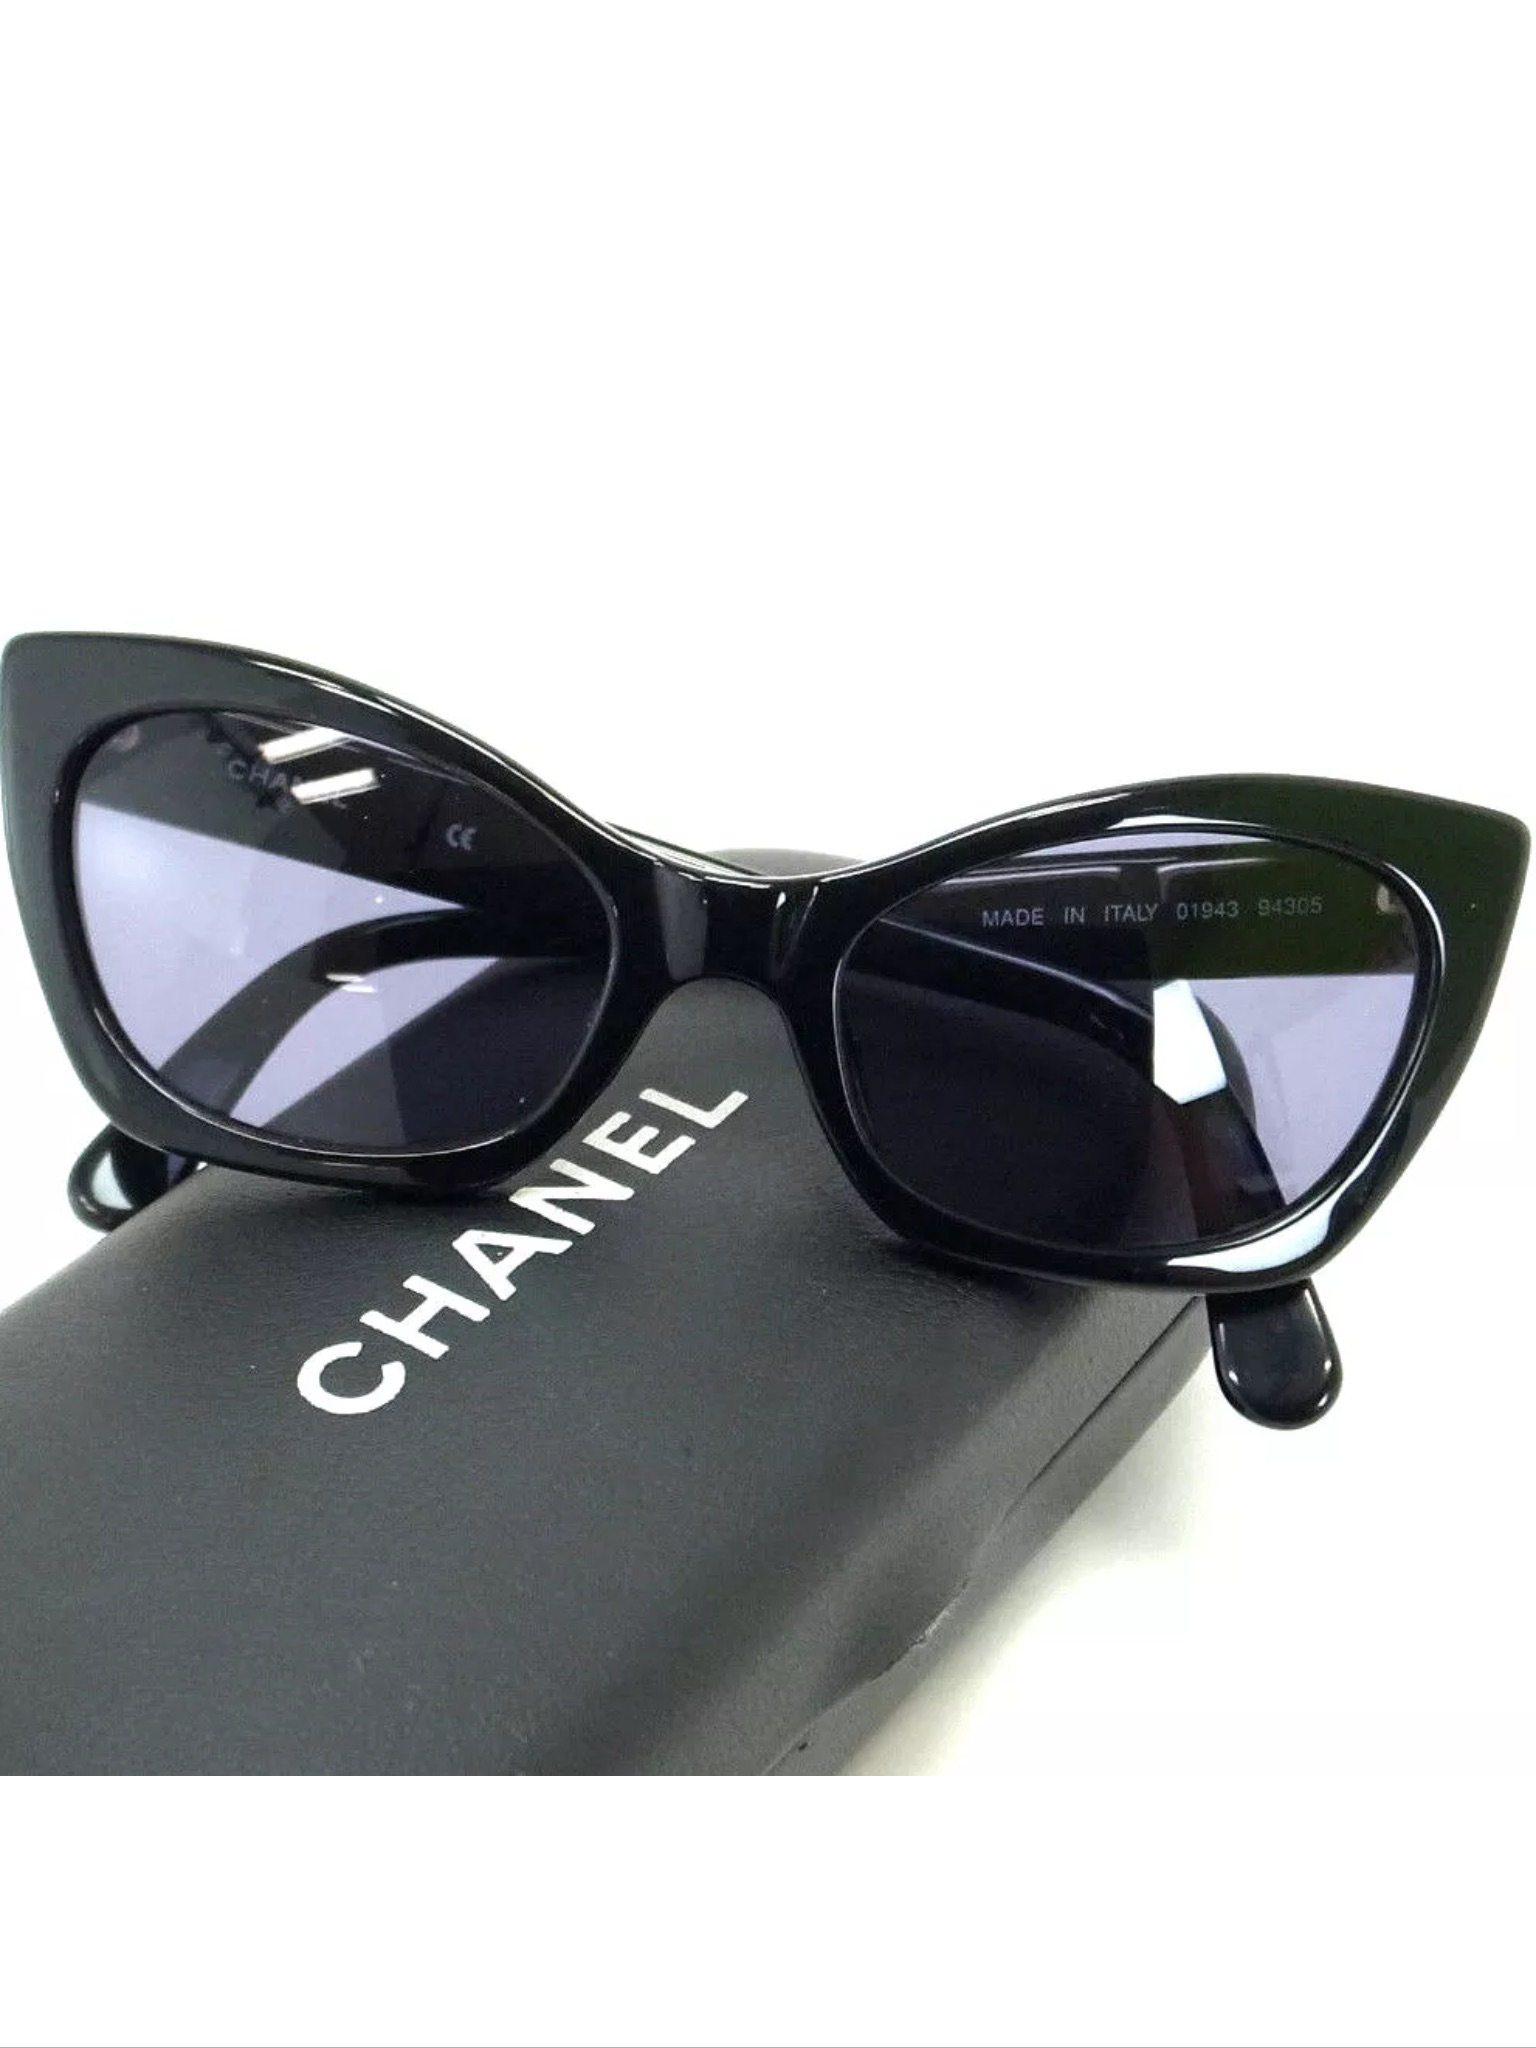 44b95437ad852 Can someone tell me if this pair of Chanel sunglas... - The eBay ...